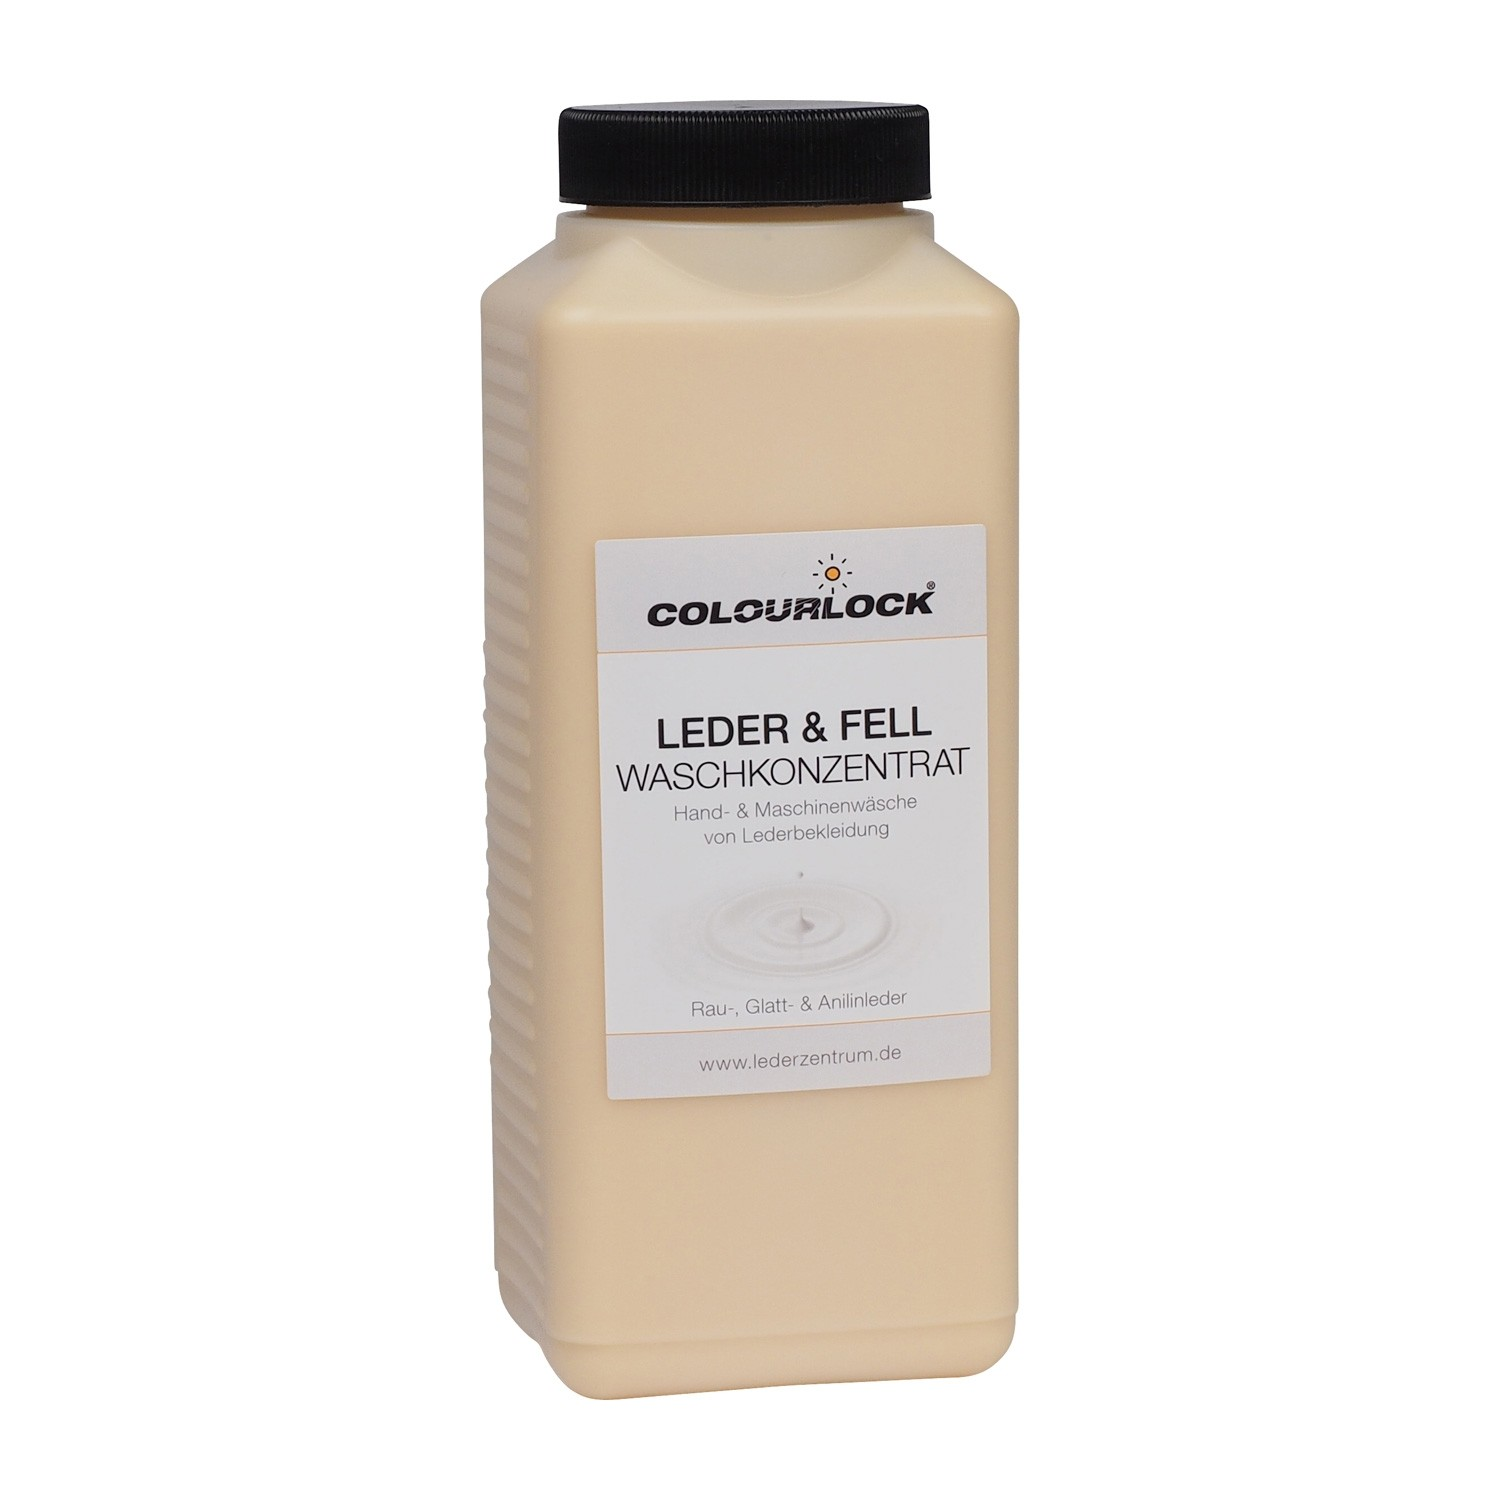 COLOURLOCK Lederwaschmittel, 1 Liter